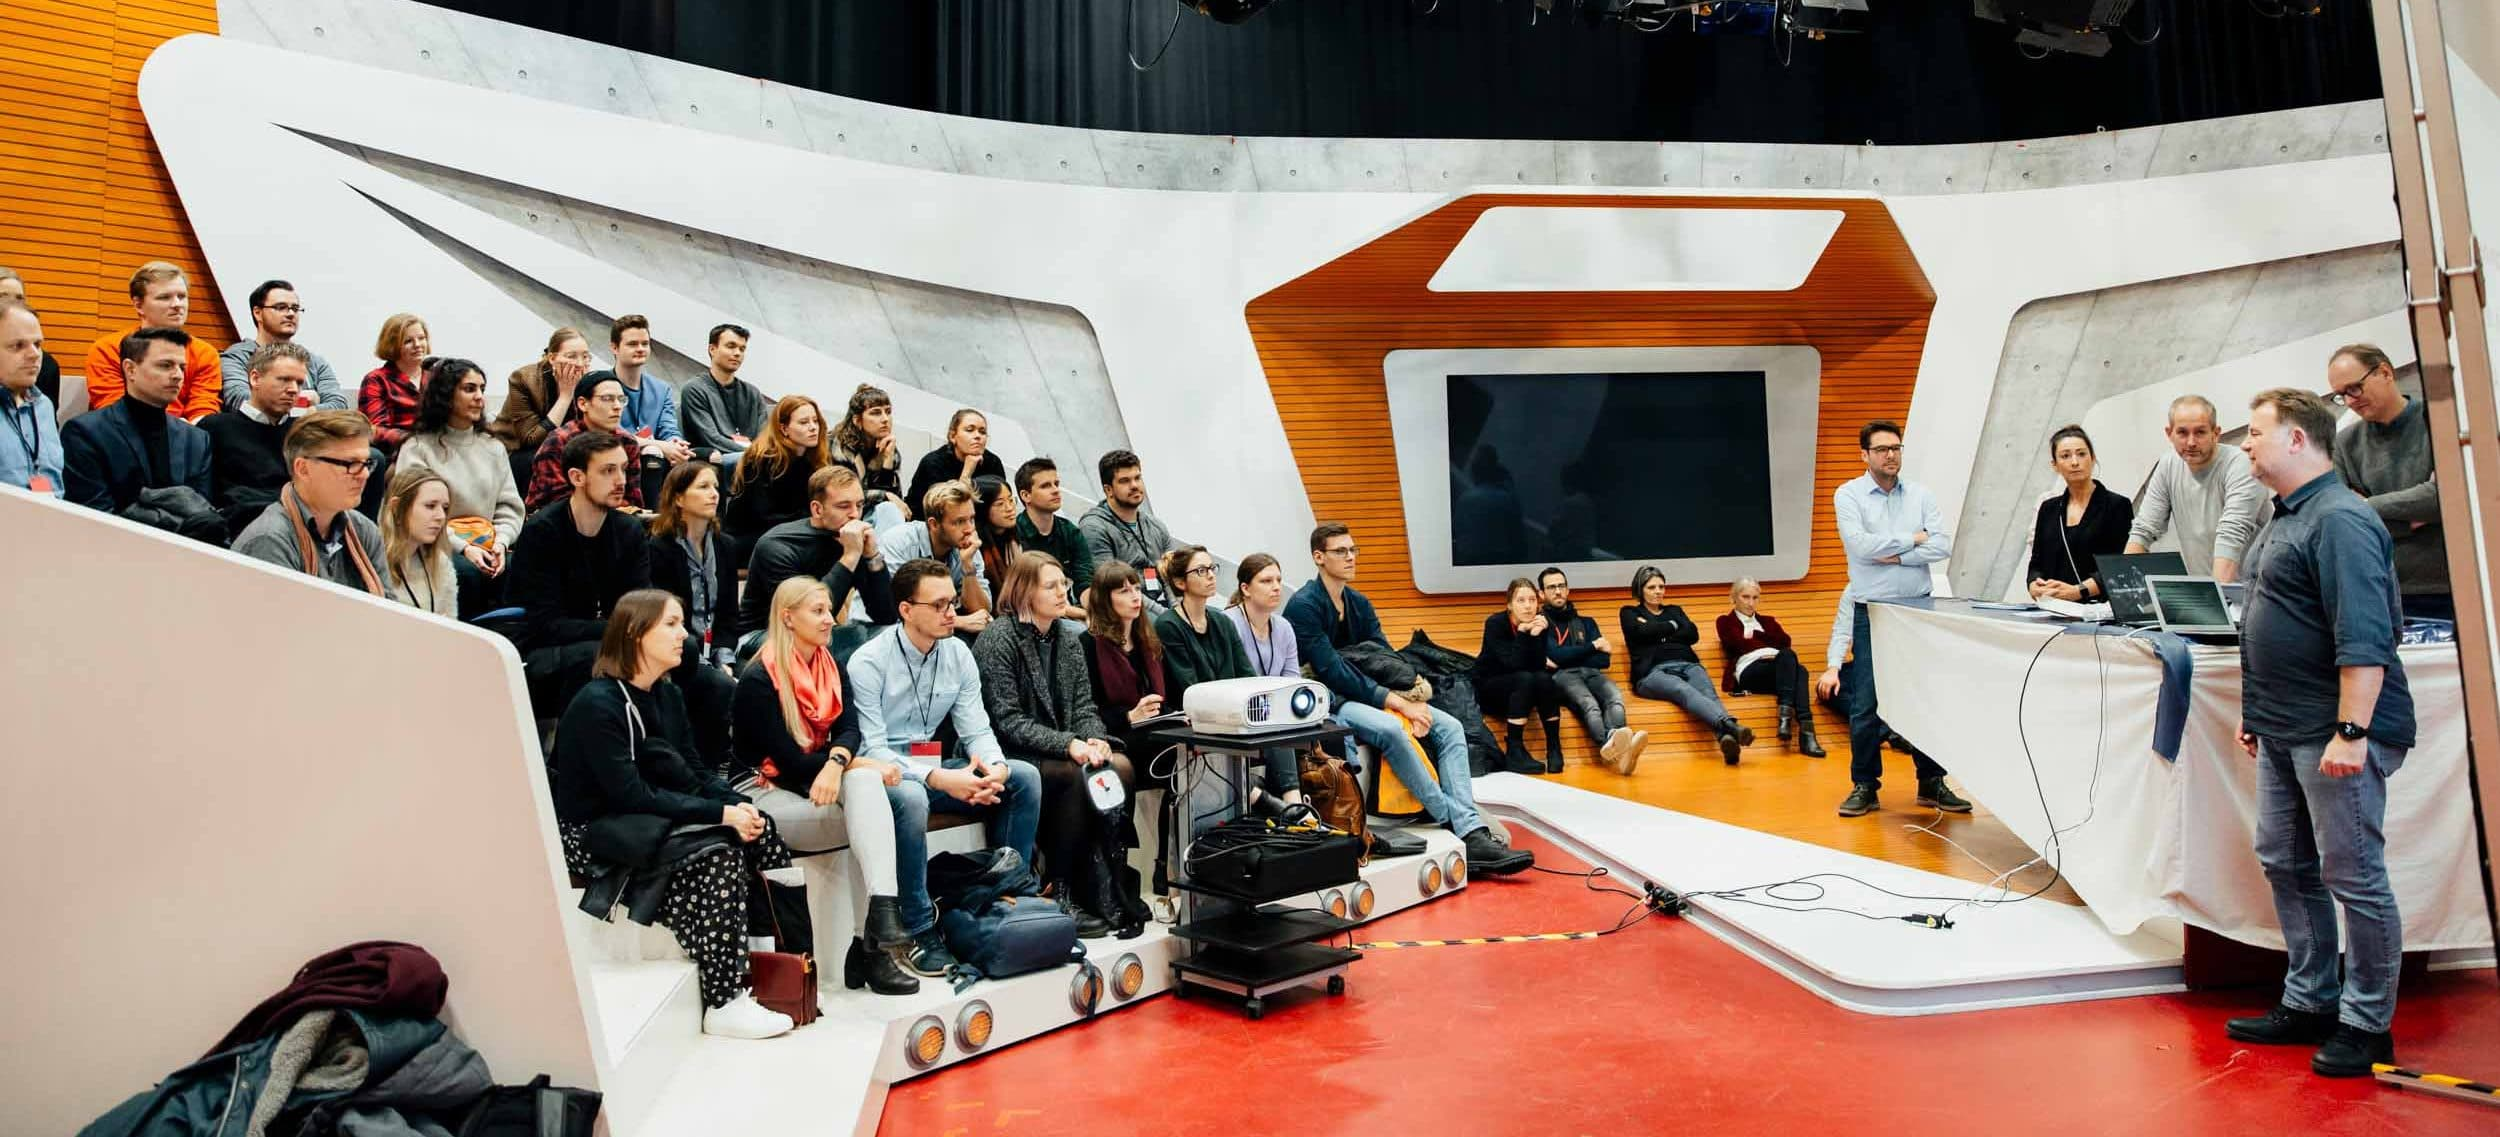 Der Media Innovation Buzz steuerte in diesem Jahr die fünf Stationen Rocket Beans TV, das Greenhouse Innovation Lab von Gruner + Jahr, DIE ZEIT, das NDR NextNewsLab und Jung von Matt an.